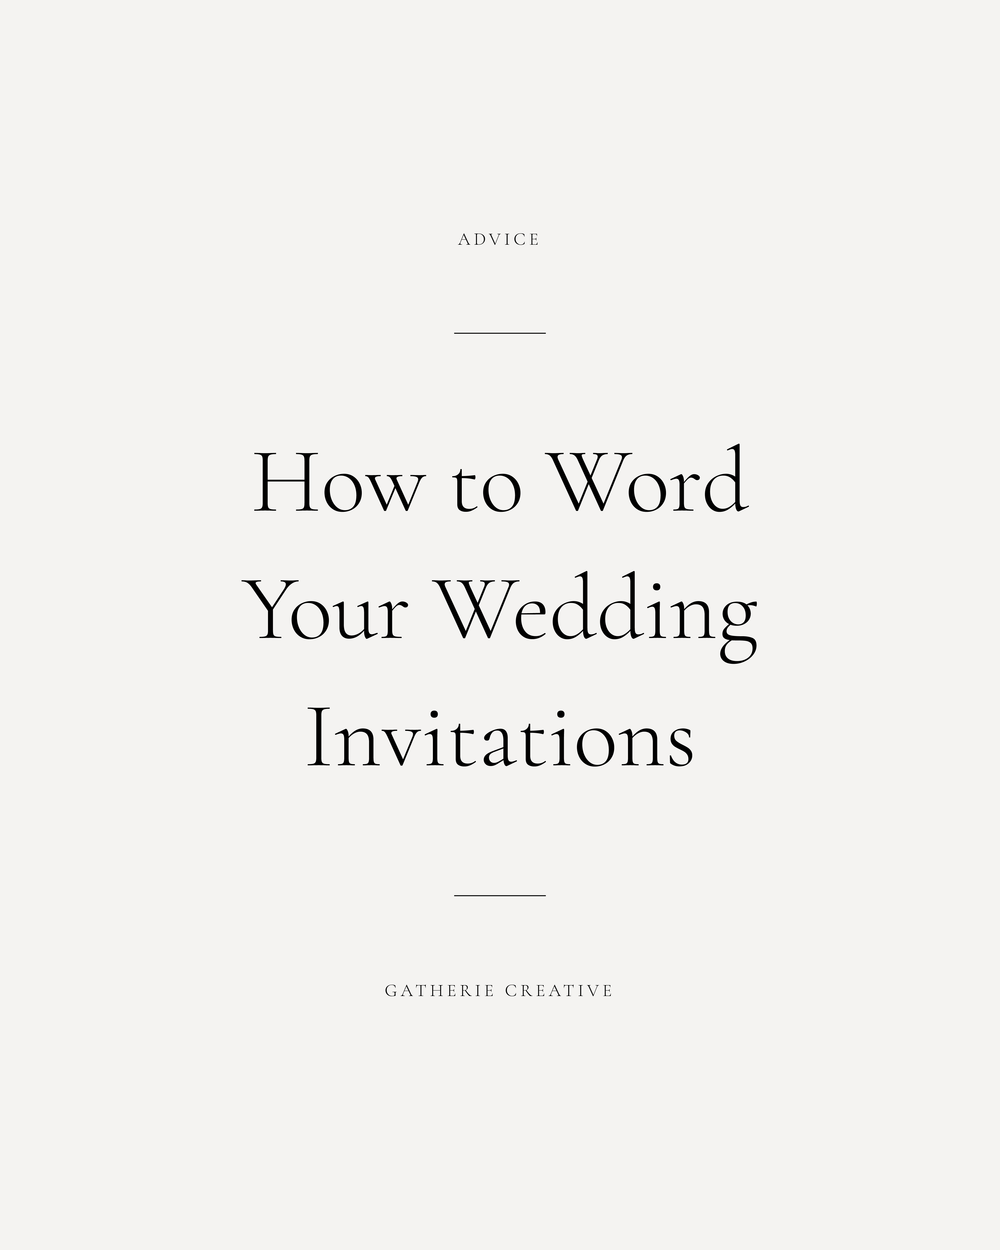 Gatherie Creative WEDDING INVITATION WORDING ETIQUETTE